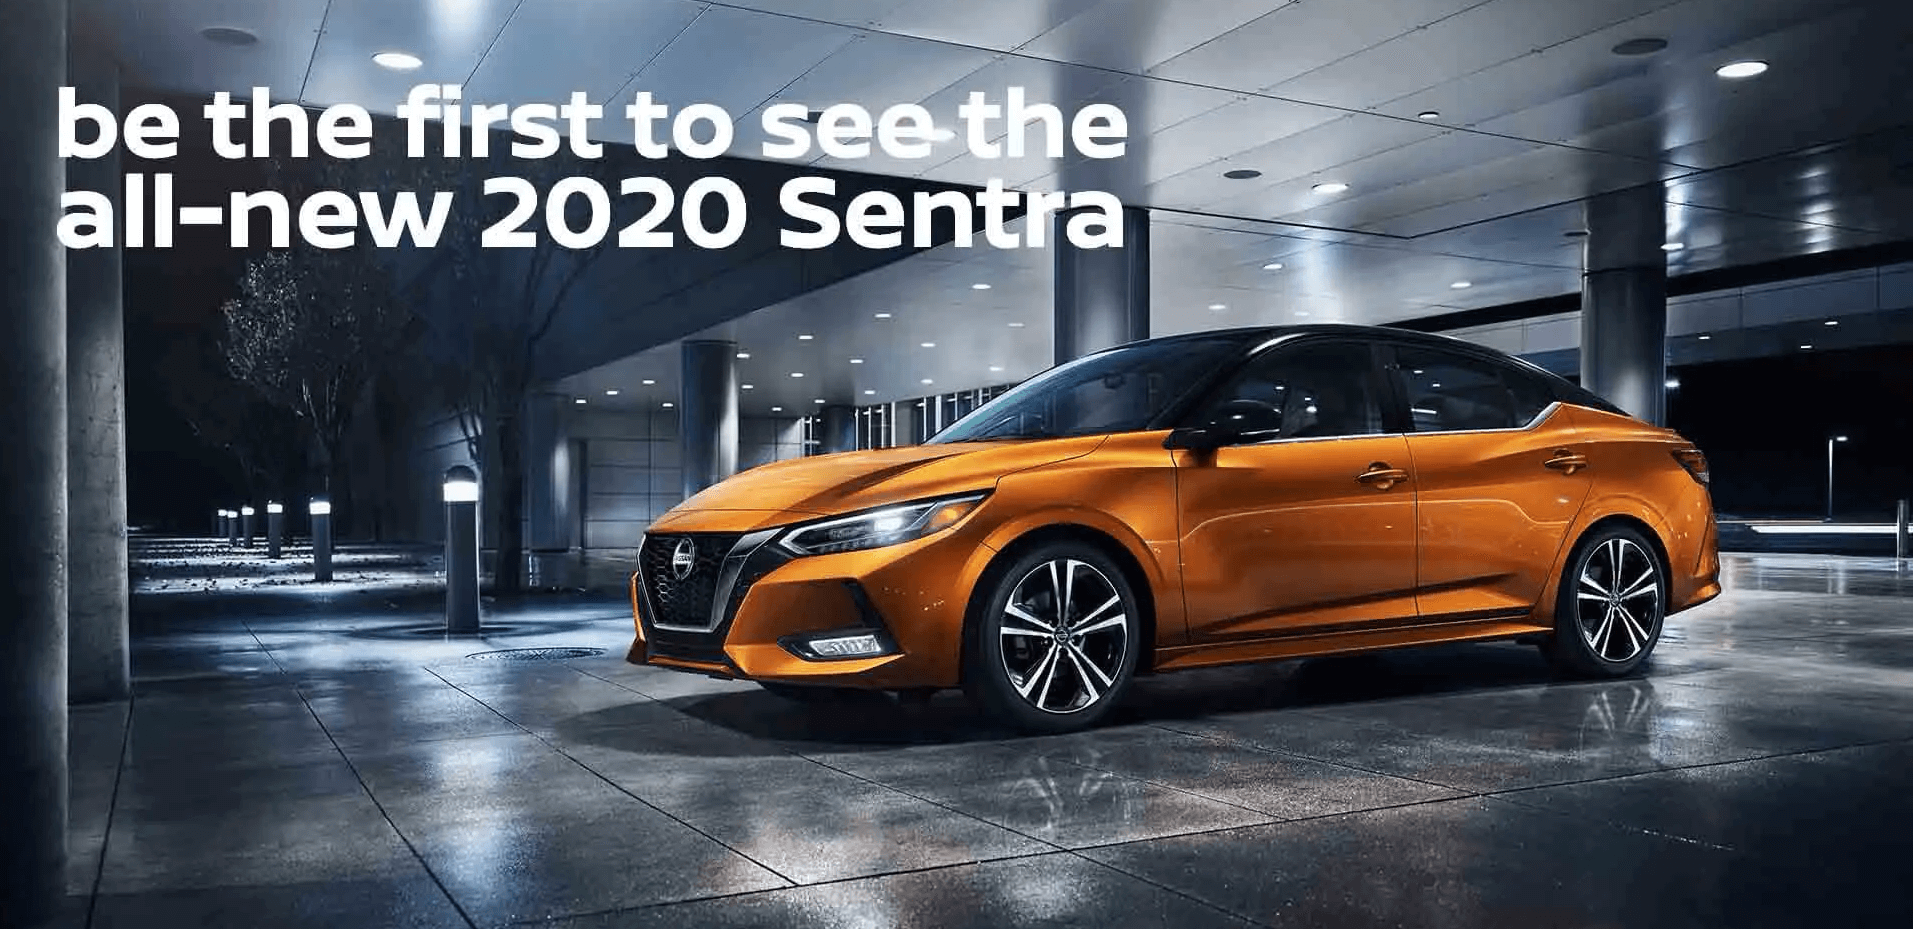 be the first to see the all-new 2020 Sentra